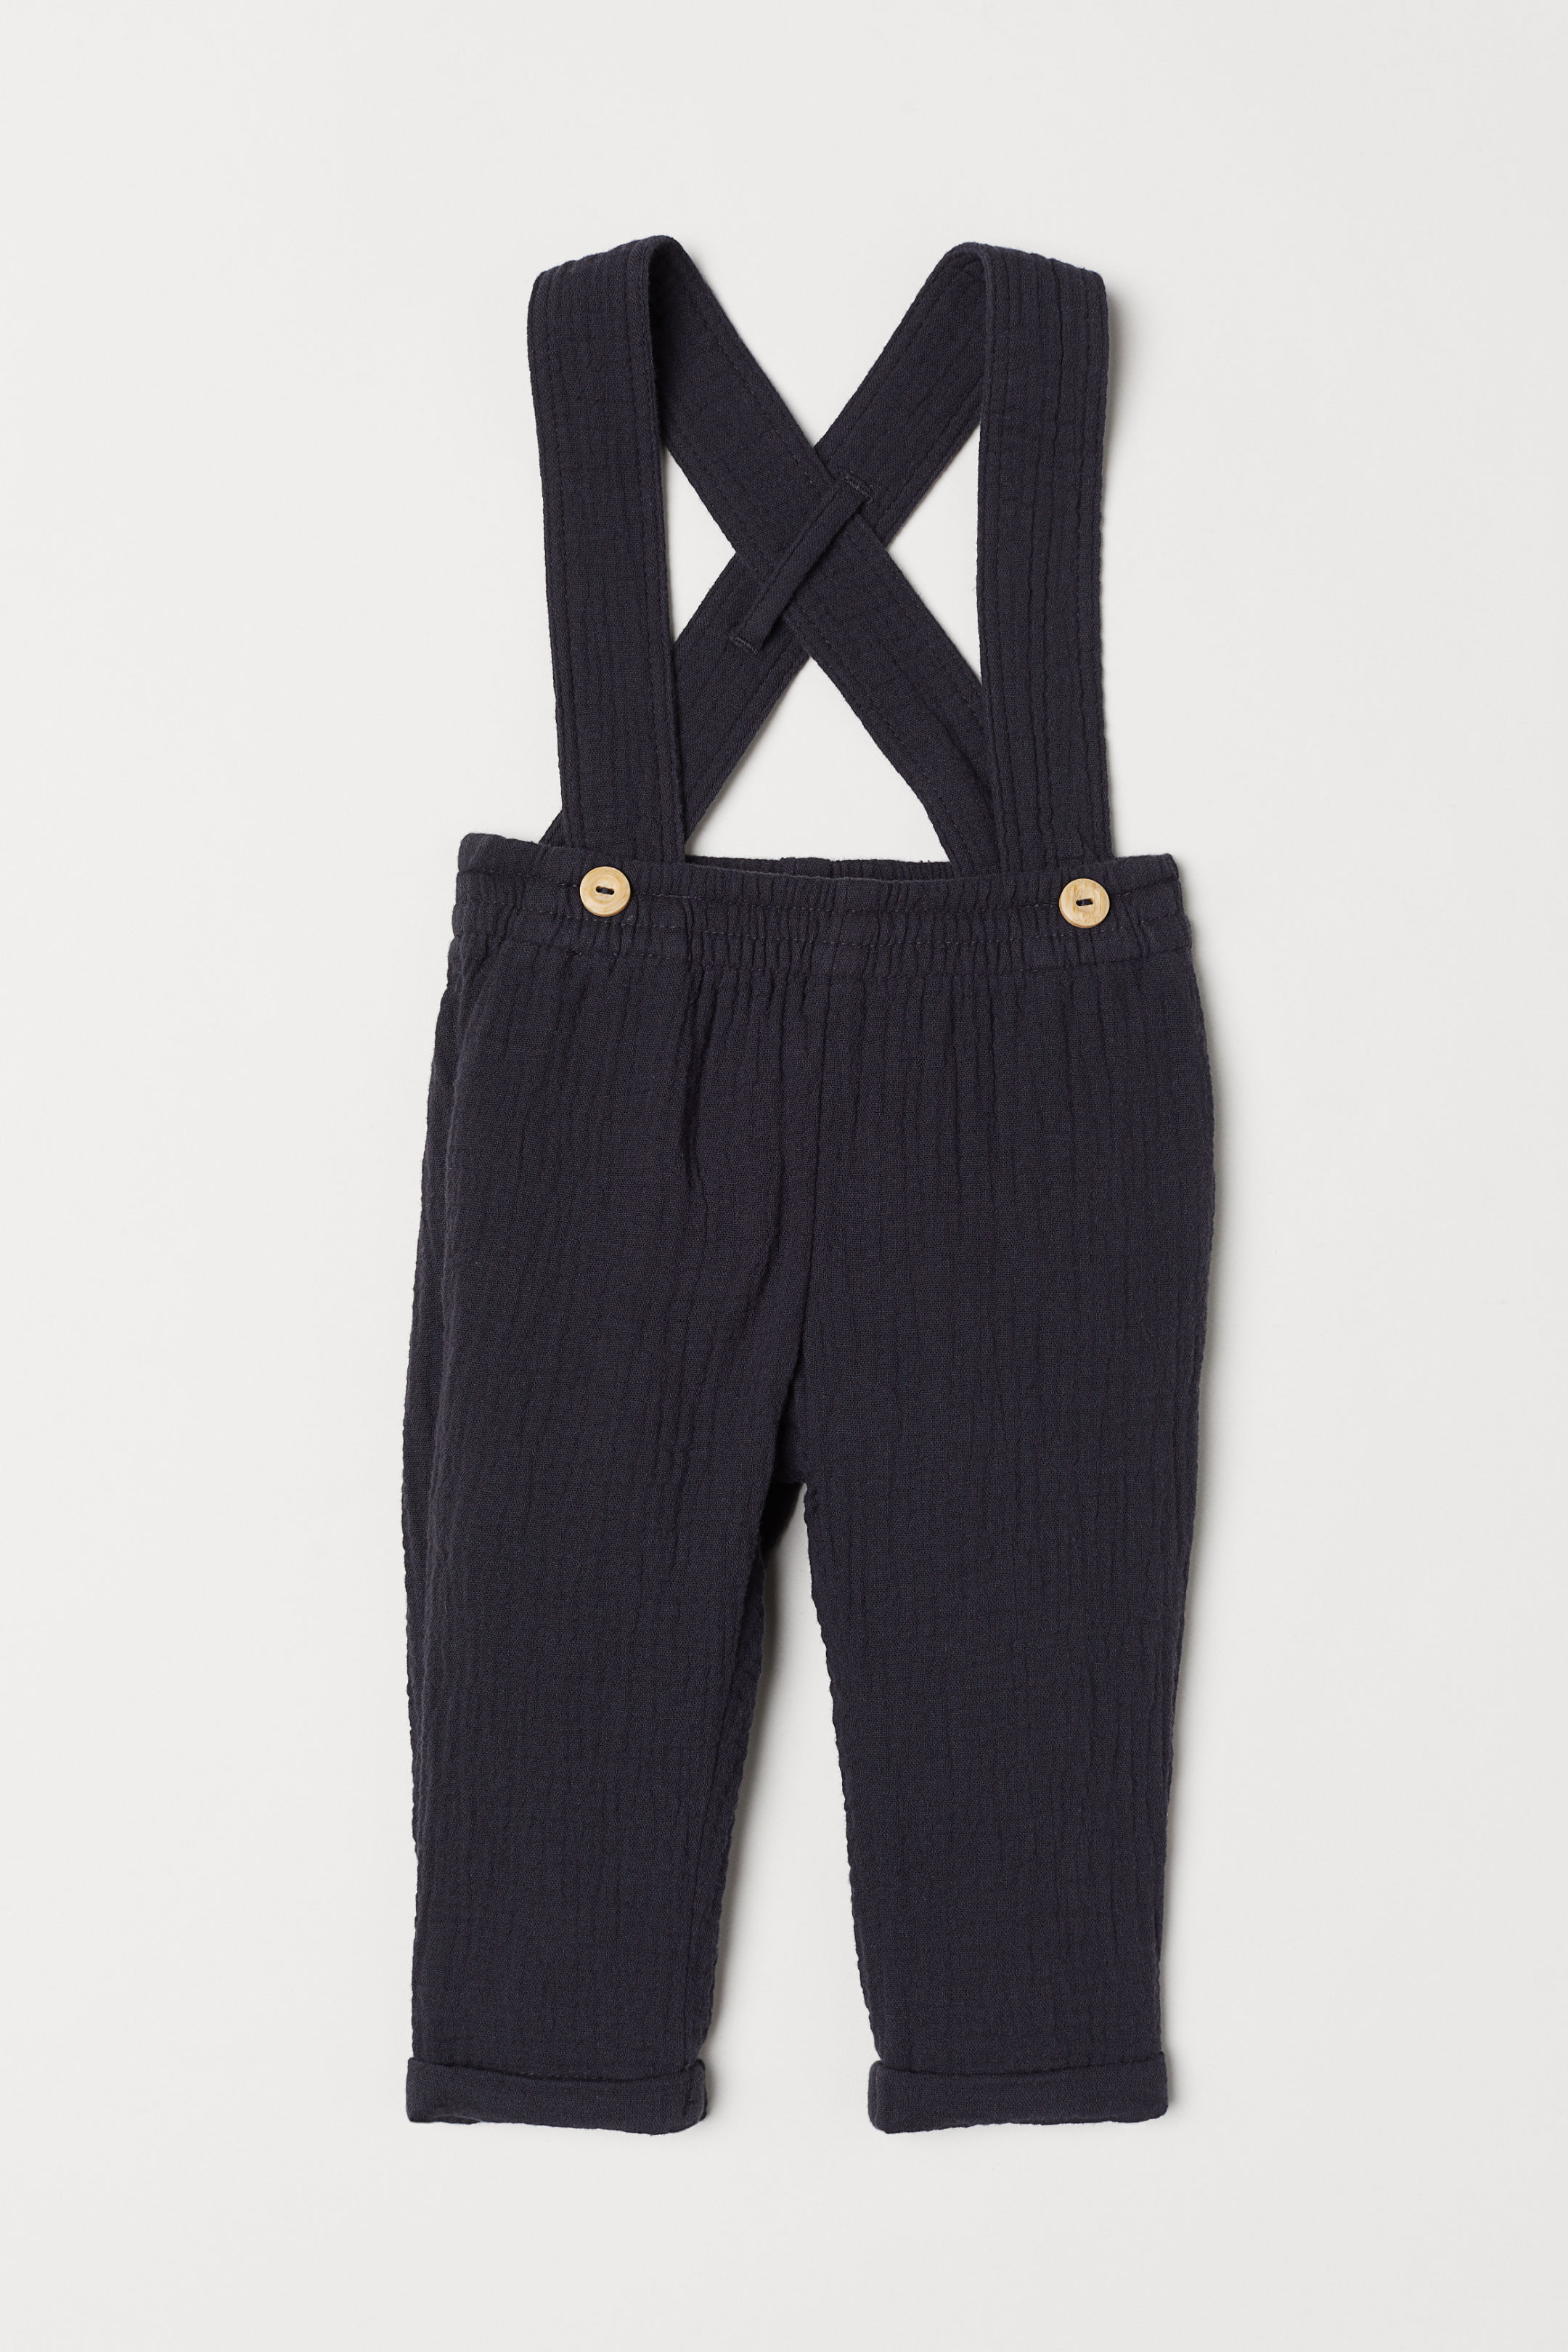 black-trousers-with-braces